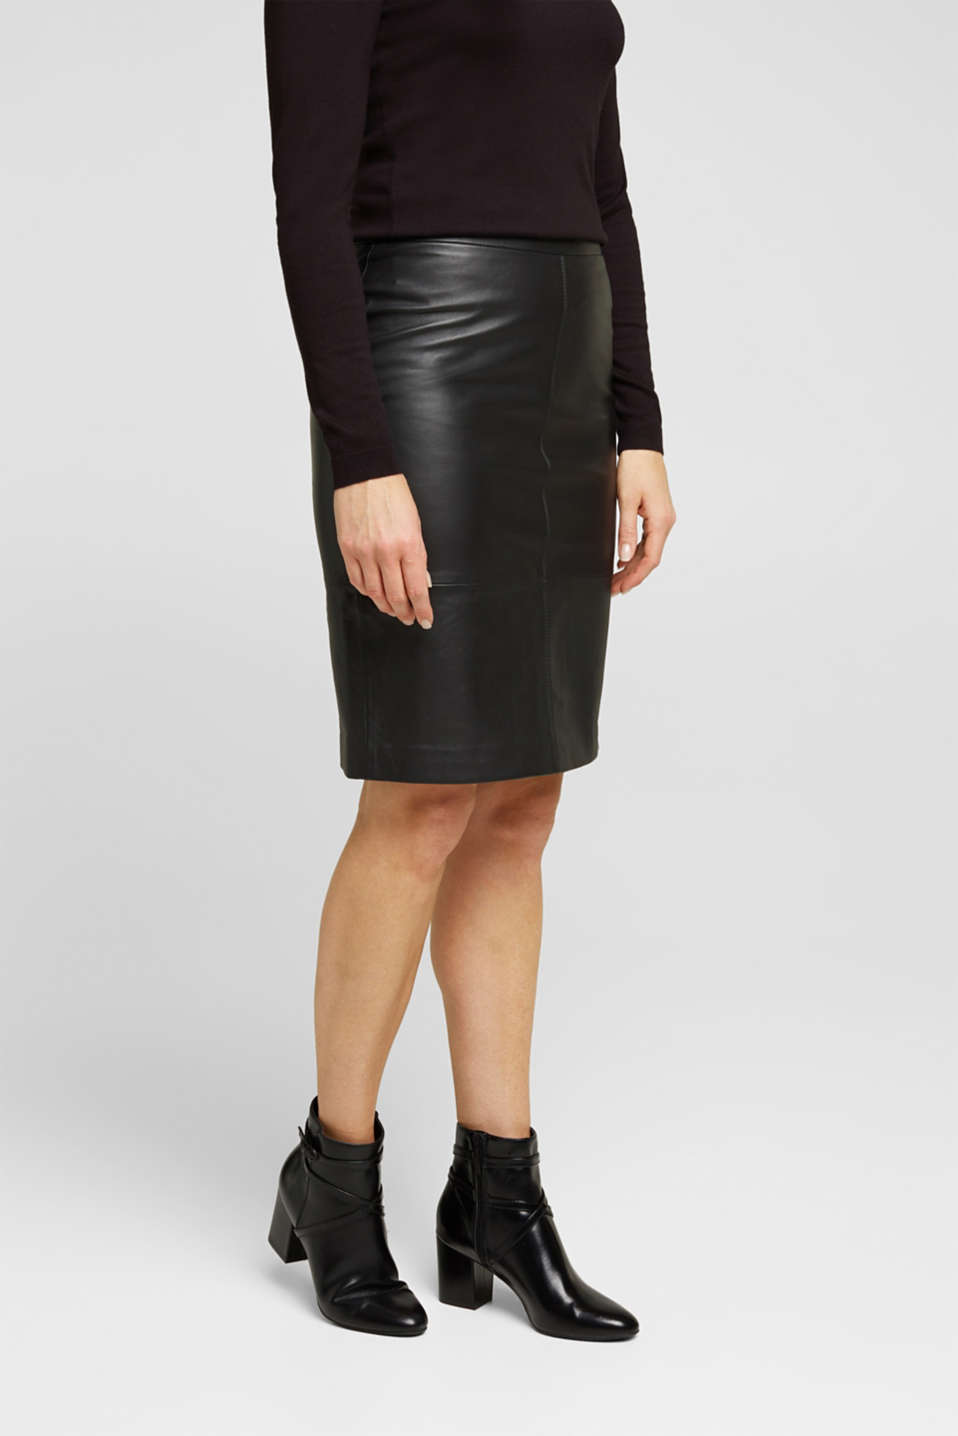 Esprit - Pencil skirt made of 100% leather